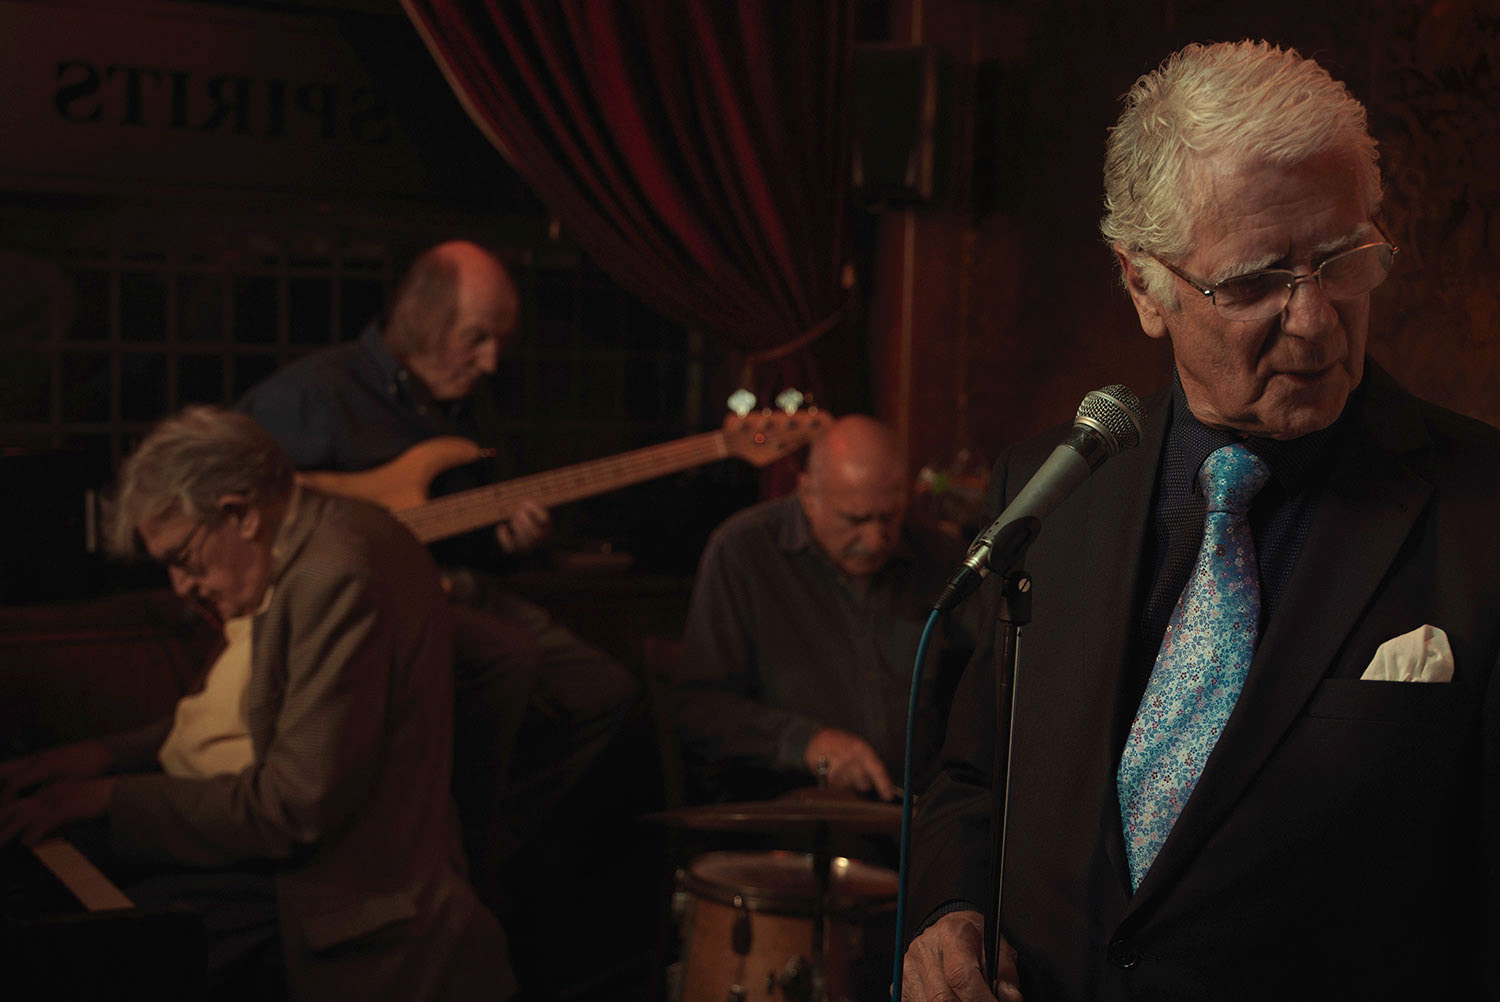 Old time band. Image from Last of the Old Crooners, Palm Tree pub by Tom Oldham